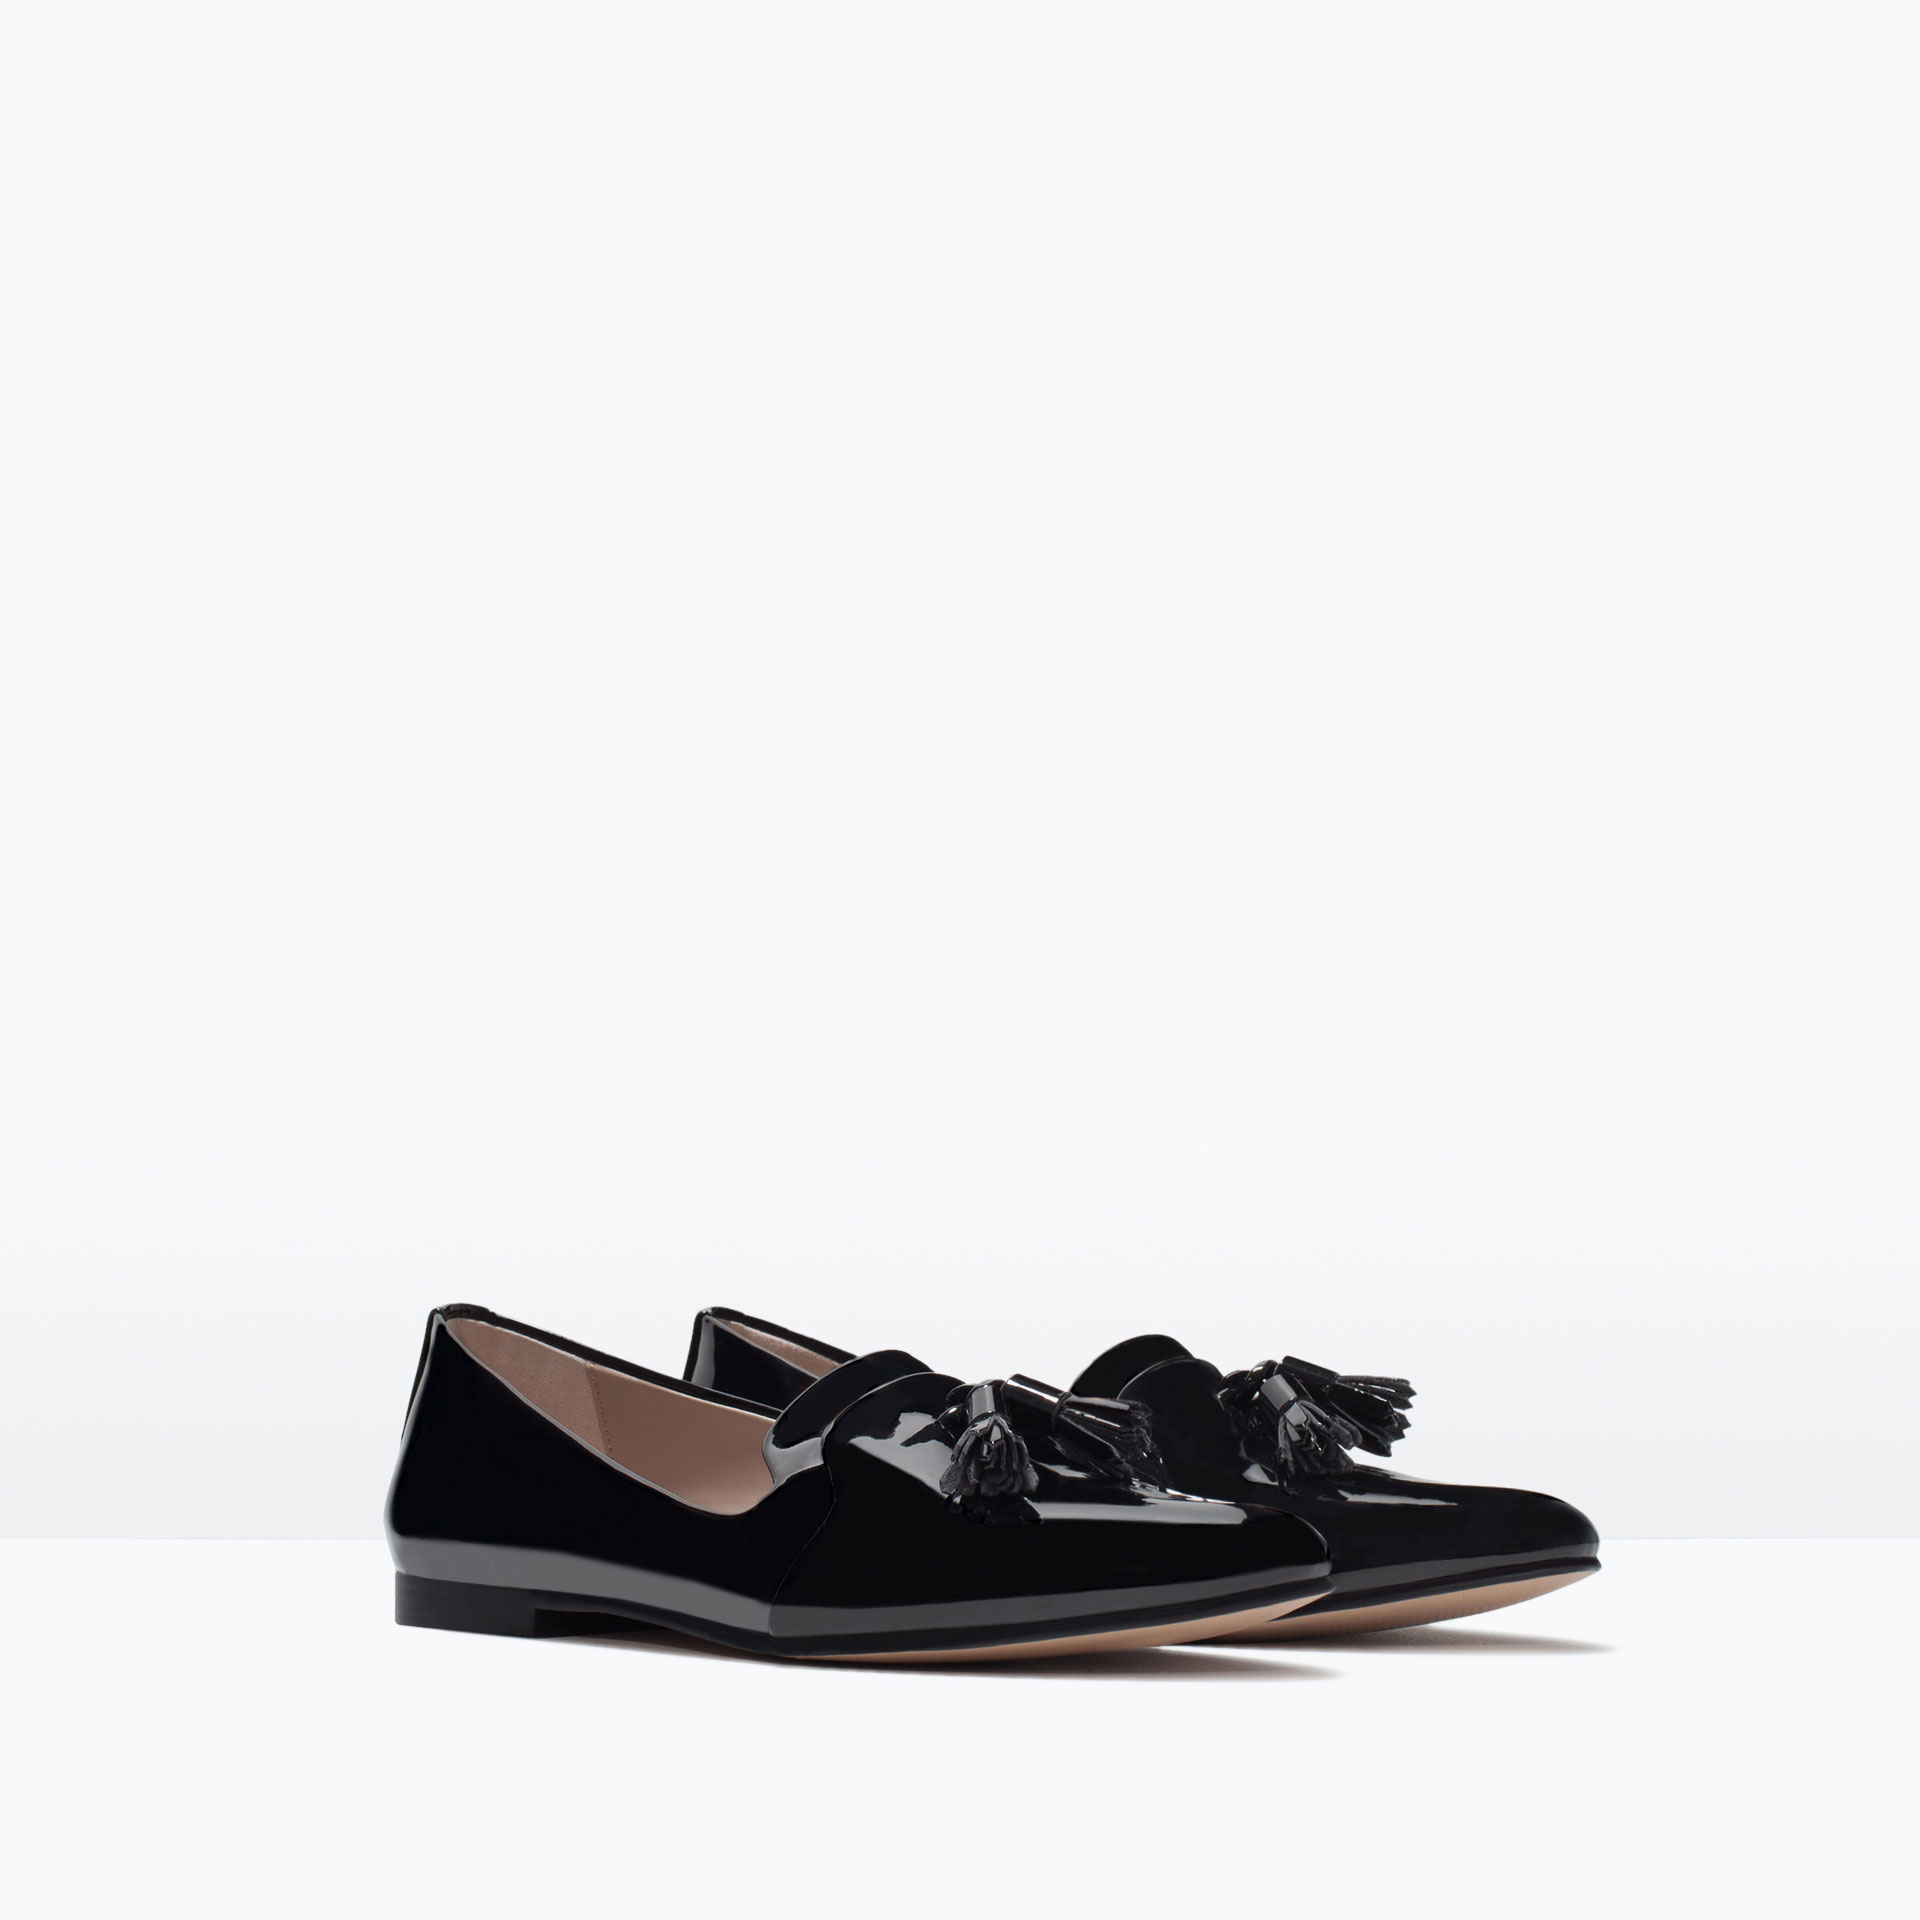 Unique Zara Moccasin With Bow Moccasin With Bow In Black  Lyst